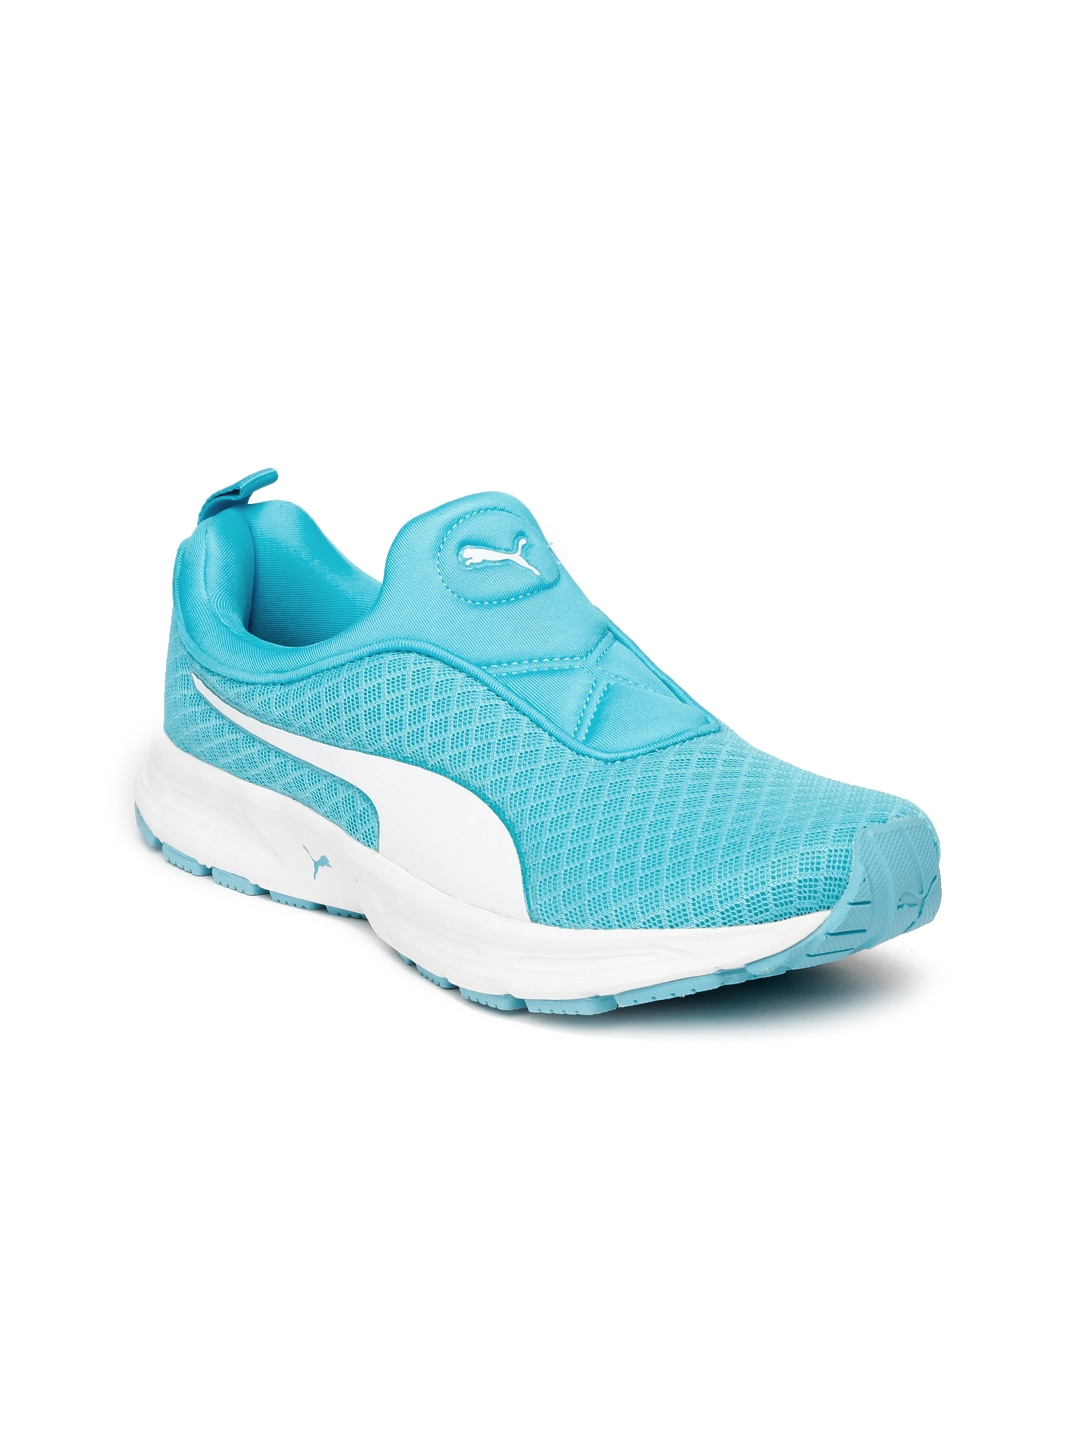 Sports Shoes for Women - Buy Women Sports Shoes Online  964e4ec05799